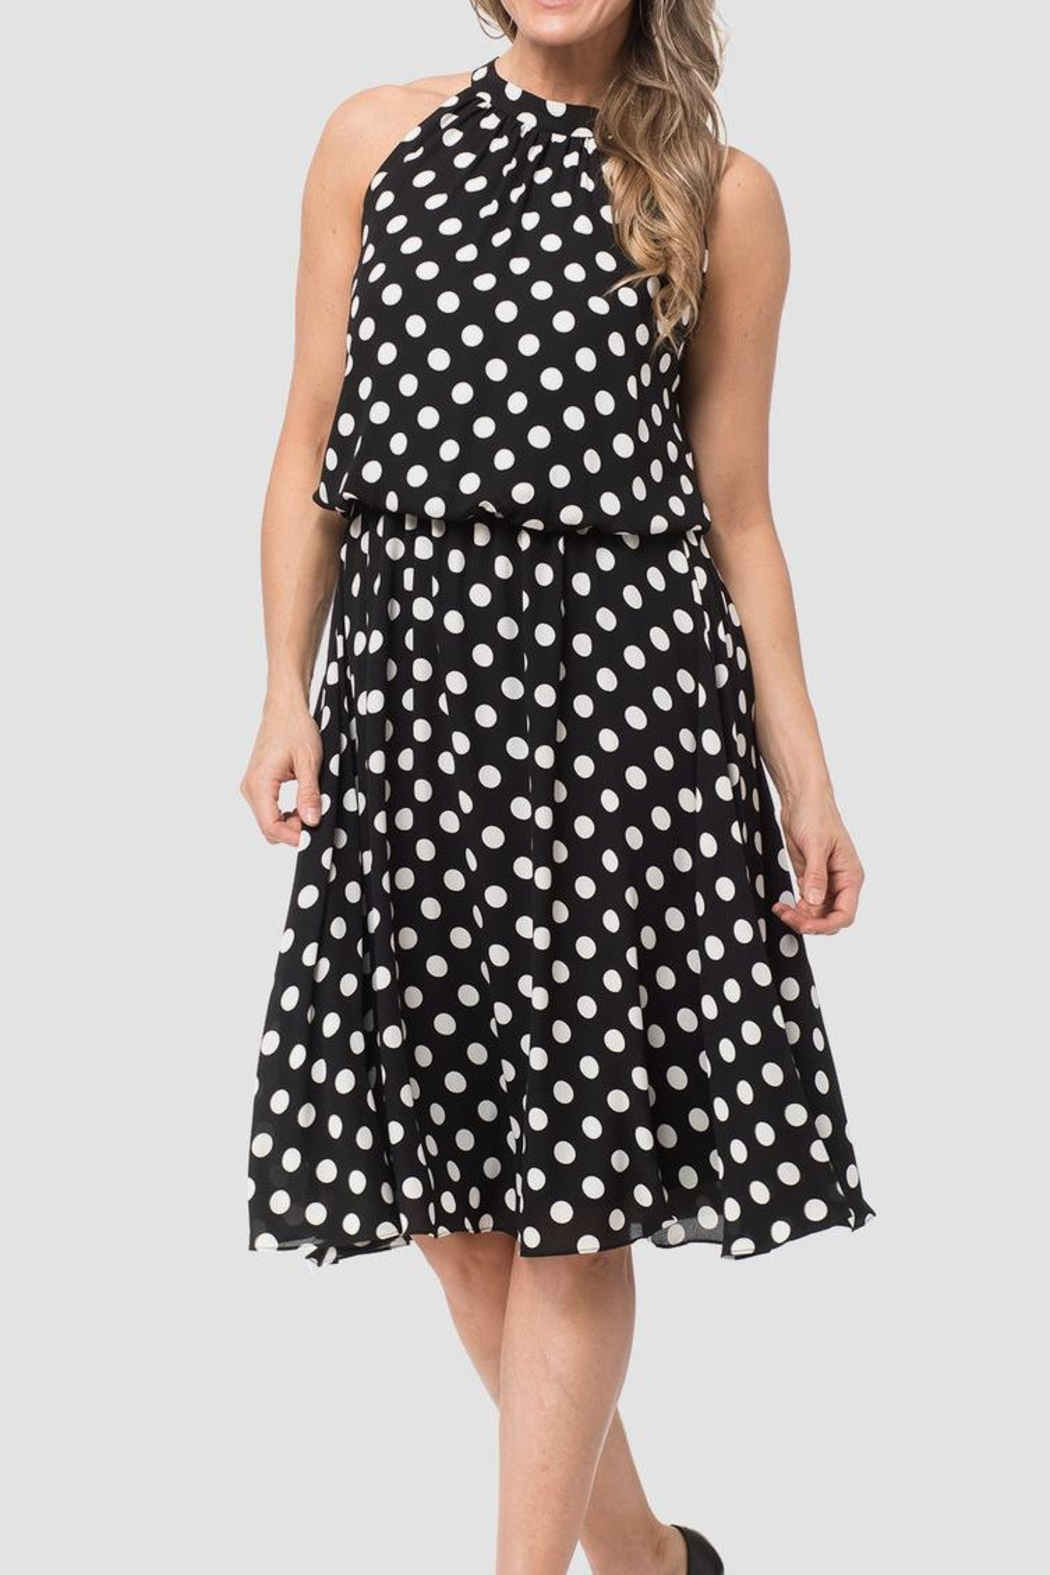 18e4bd1a4a Joseph Ribkoff Polka Dot Dress from New Jersey by Sabine s Boutique ...